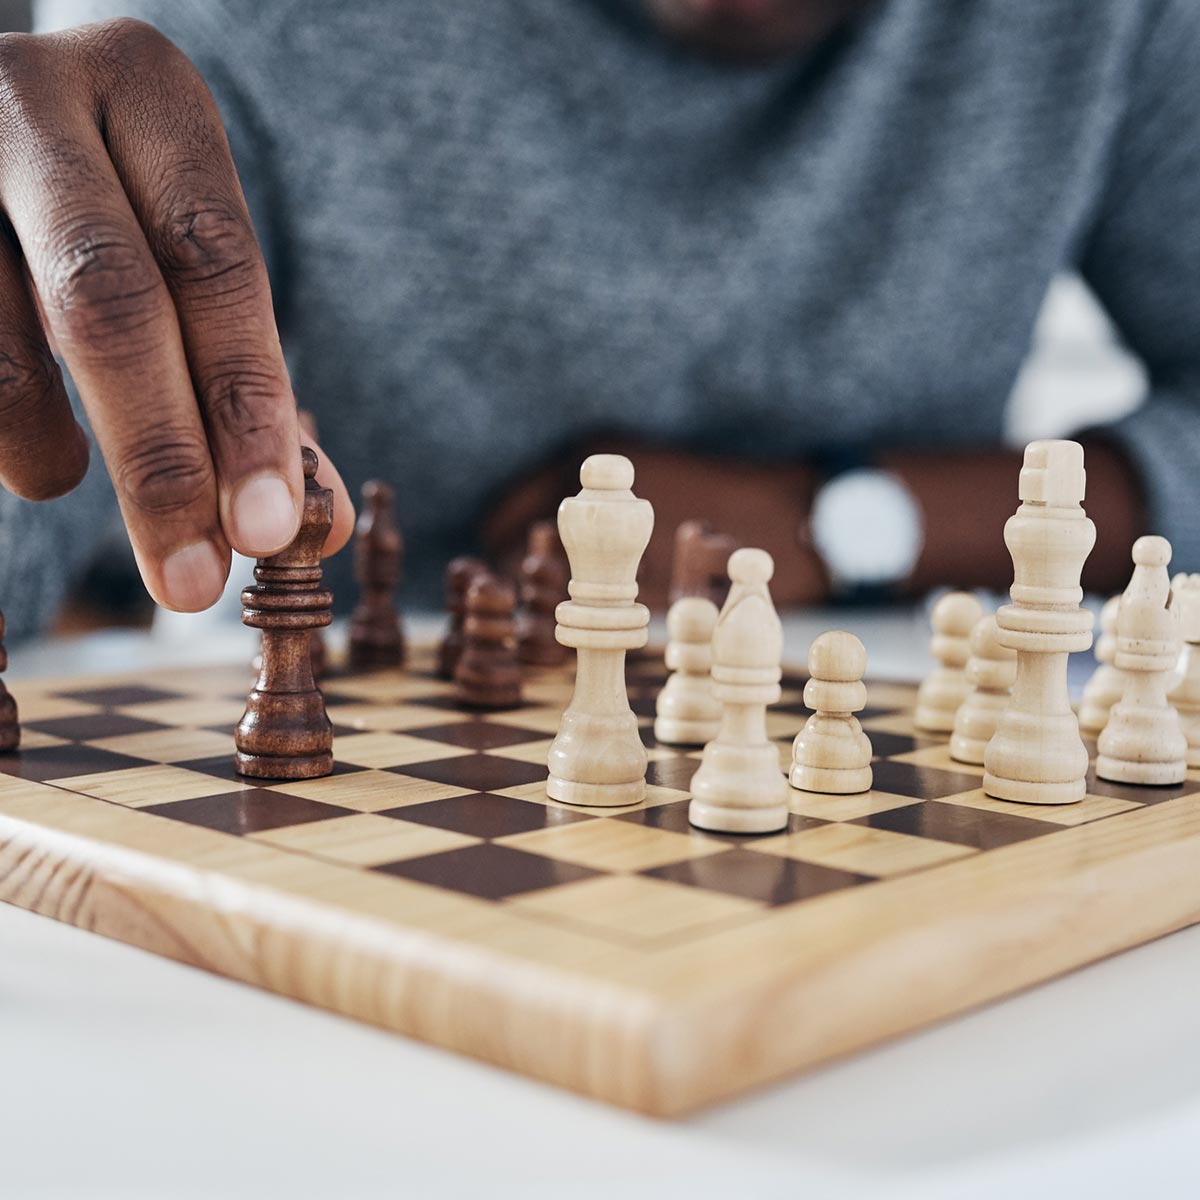 Image of someone playing chess.